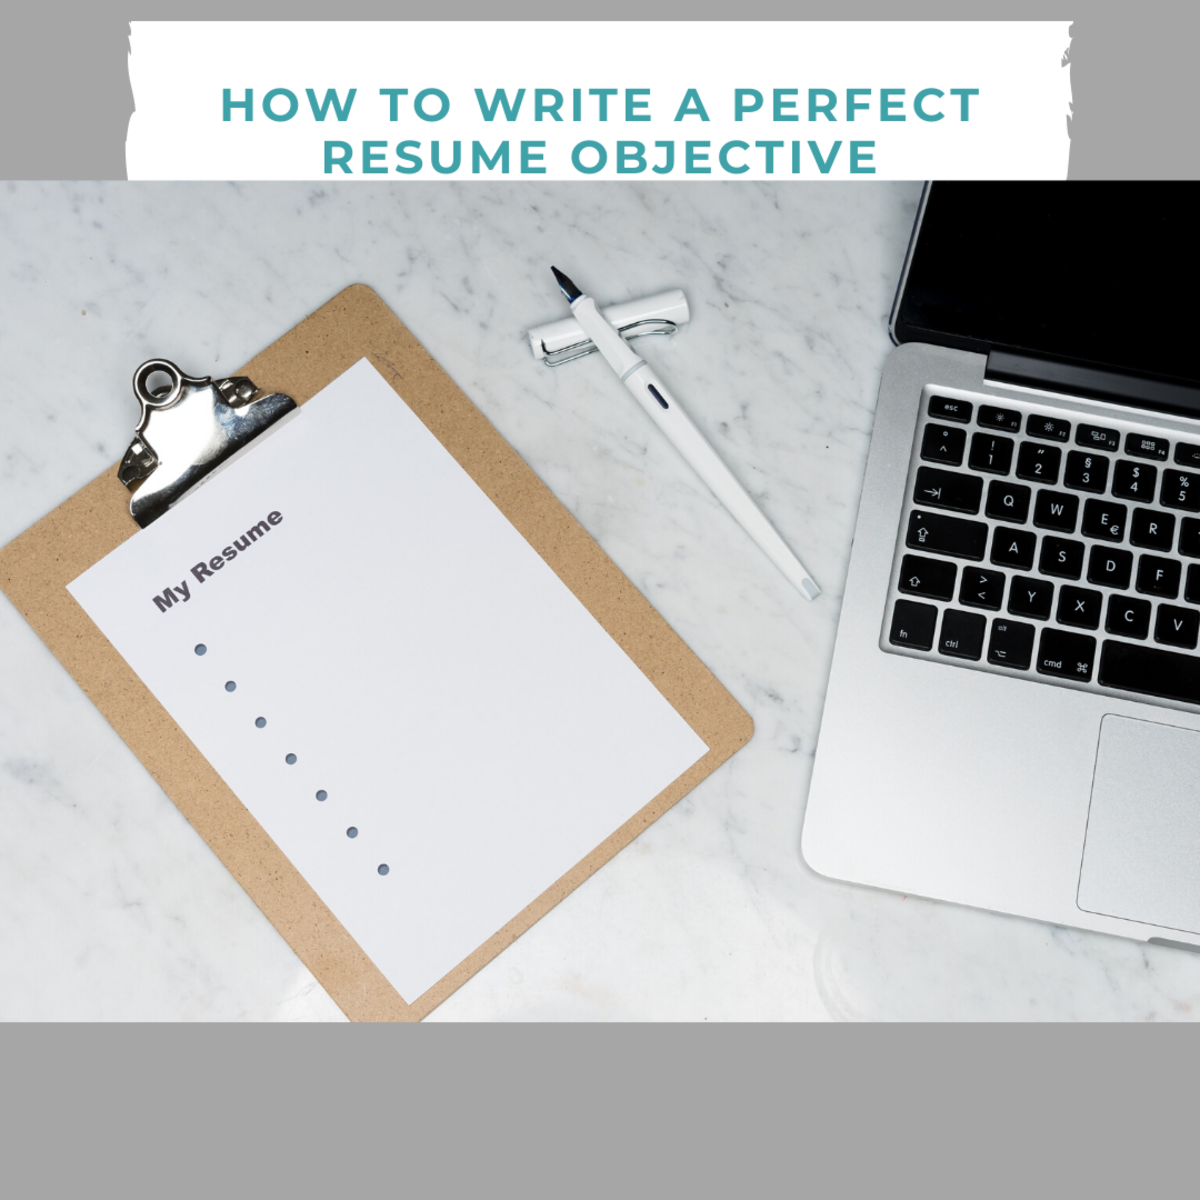 Writing a meaningful objective for a resume can delay the completion of the document. Don't let this happen to you.